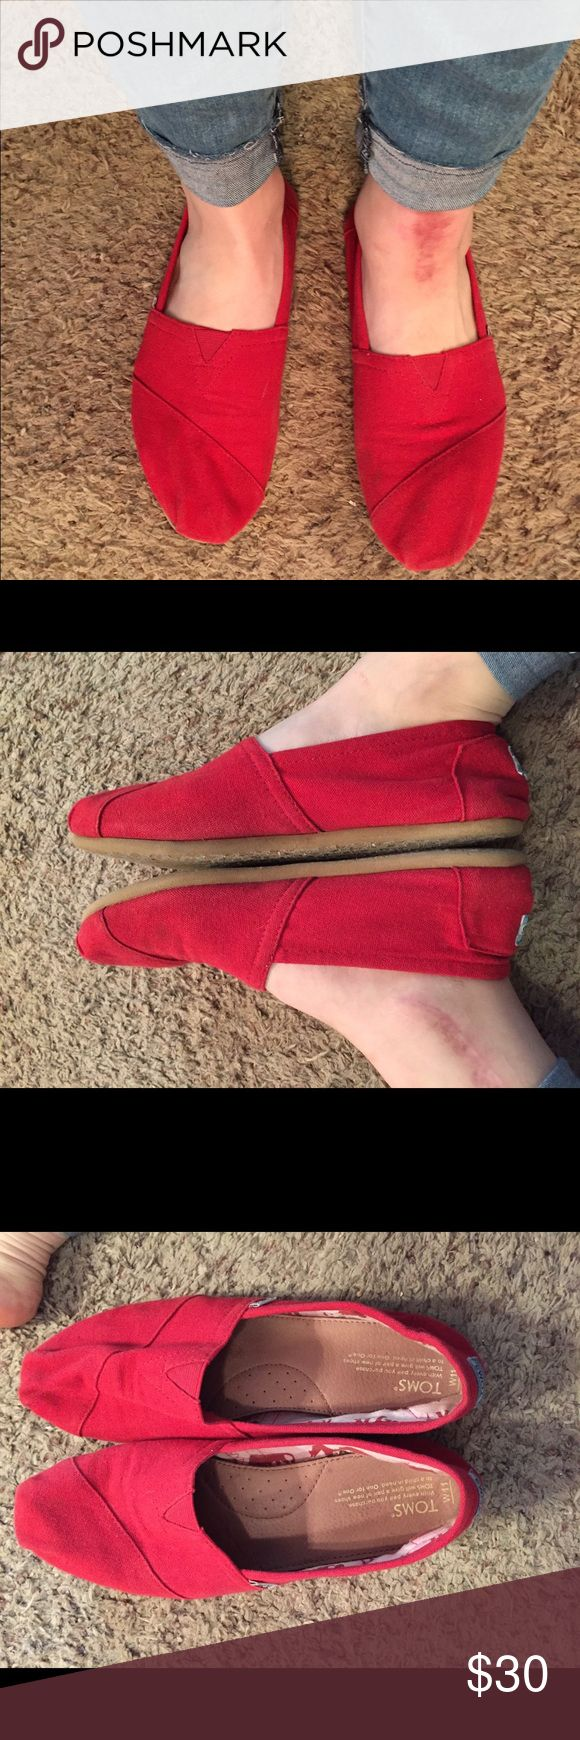 Red TOMS 11 Great shoes, haven't worn them in a year or so, but are still in great condition! No stains or smells. Size 11. TOMS Shoes Flats & Loafers